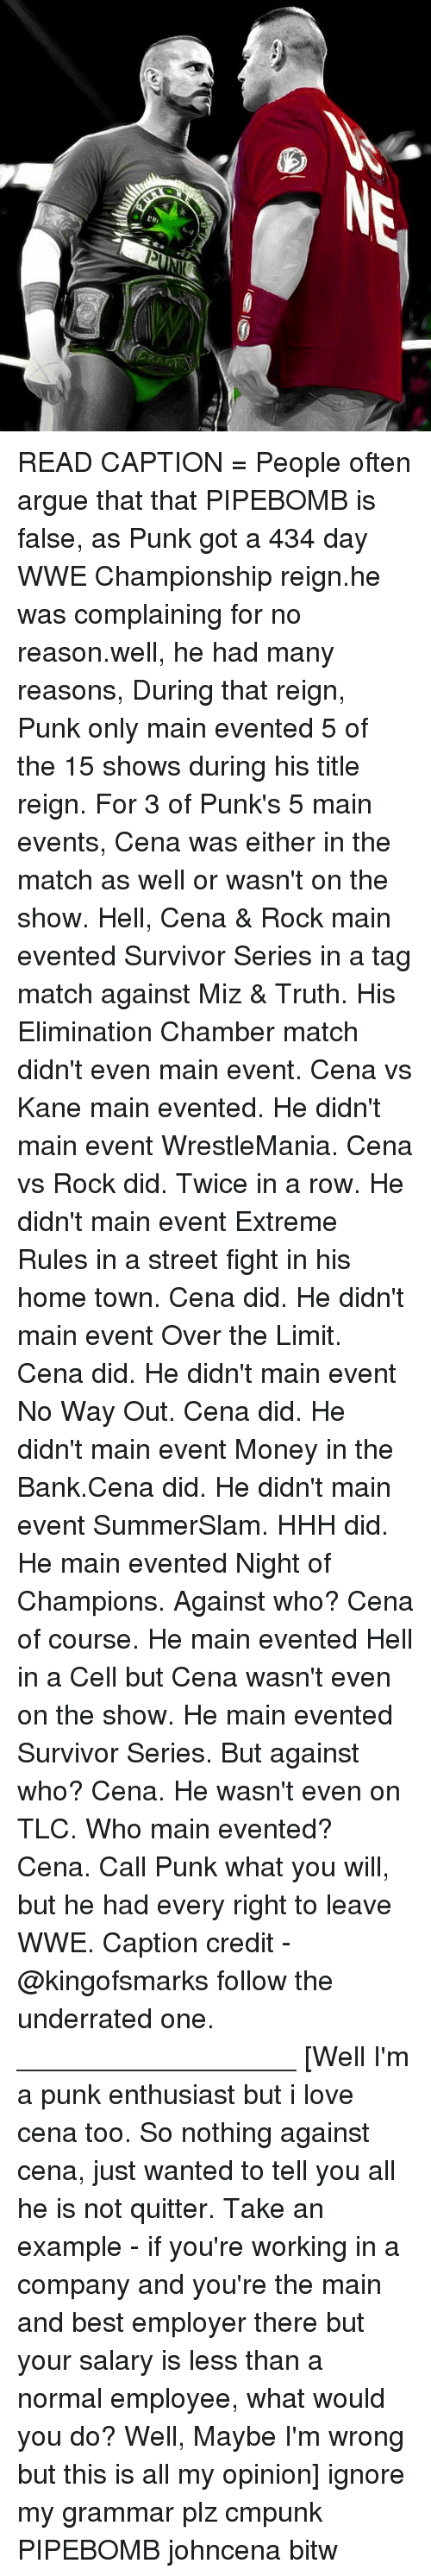 Arguing, Love, and Memes: READ CAPTION = People often argue that that PIPEBOMB is false, as Punk got a 434 day WWE Championship reign.he was complaining for no reason.well, he had many reasons, During that reign, Punk only main evented 5 of the 15 shows during his title reign. For 3 of Punk's 5 main events, Cena was either in the match as well or wasn't on the show. Hell, Cena & Rock main evented Survivor Series in a tag match against Miz & Truth. His Elimination Chamber match didn't even main event. Cena vs Kane main evented. He didn't main event WrestleMania. Cena vs Rock did. Twice in a row. He didn't main event Extreme Rules in a street fight in his home town. Cena did. He didn't main event Over the Limit. Cena did. He didn't main event No Way Out. Cena did. He didn't main event Money in the Bank.Cena did. He didn't main event SummerSlam. HHH did. He main evented Night of Champions. Against who? Cena of course. He main evented Hell in a Cell but Cena wasn't even on the show. He main evented Survivor Series. But against who? Cena. He wasn't even on TLC. Who main evented? Cena. Call Punk what you will, but he had every right to leave WWE. Caption credit - @kingofsmarks follow the underrated one. __________________ [Well I'm a punk enthusiast but i love cena too. So nothing against cena, just wanted to tell you all he is not quitter. Take an example - if you're working in a company and you're the main and best employer there but your salary is less than a normal employee, what would you do? Well, Maybe I'm wrong but this is all my opinion] ignore my grammar plz cmpunk PIPEBOMB johncena bitw